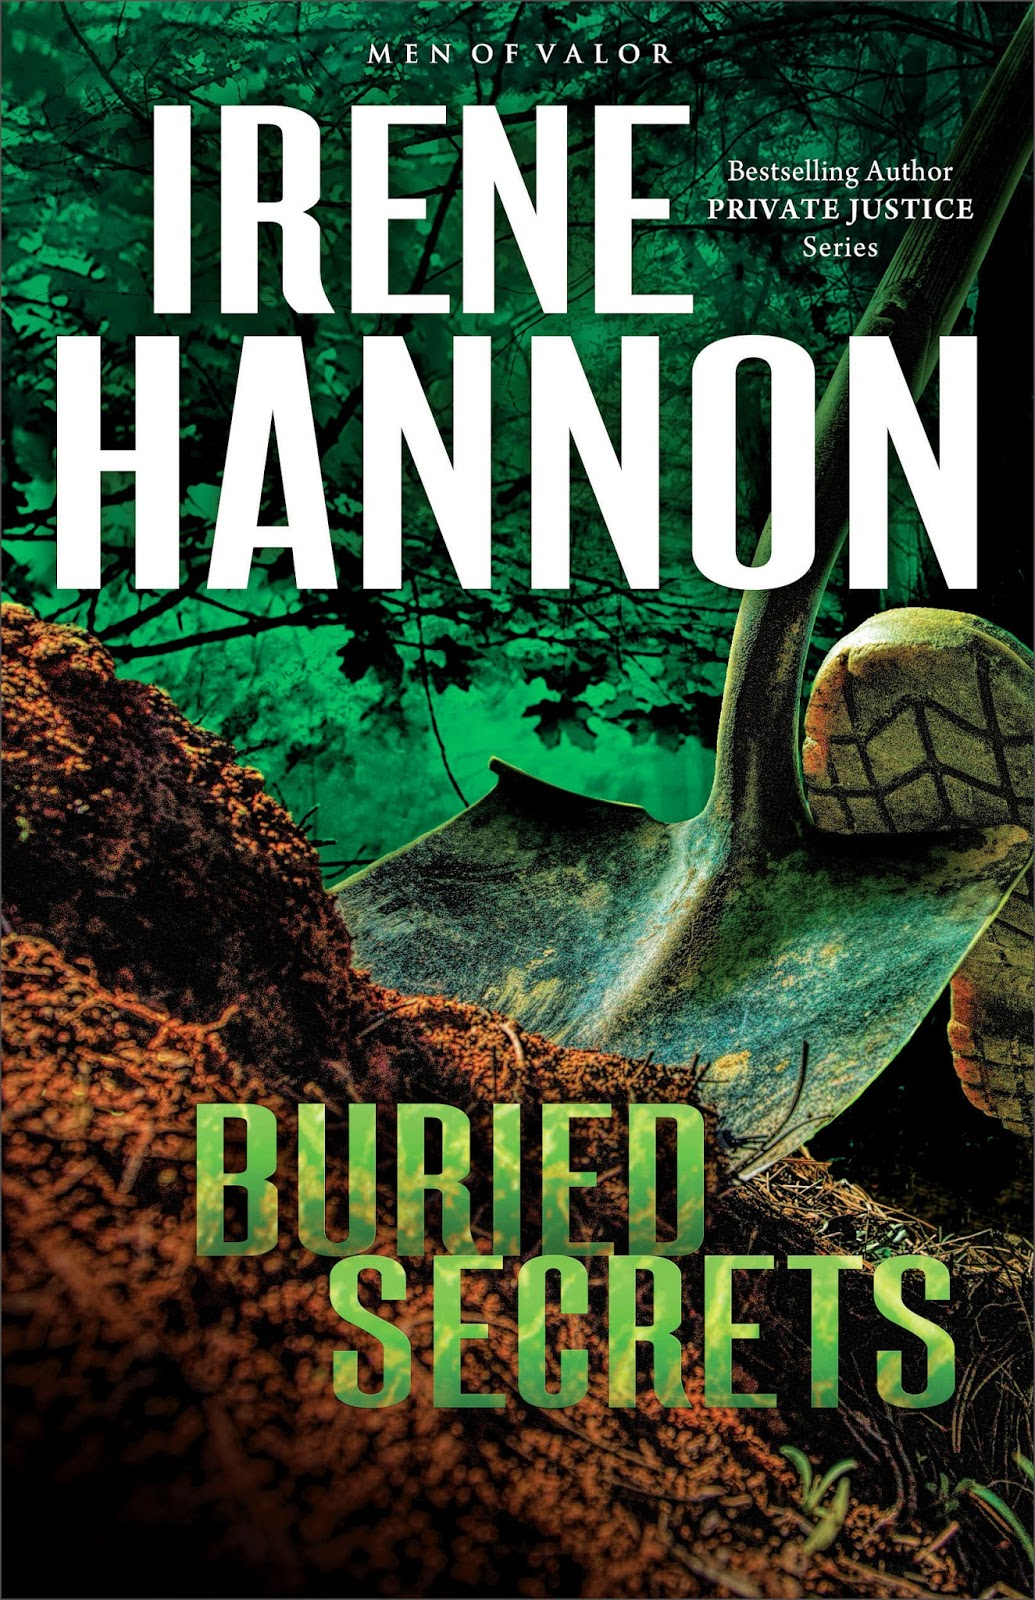 Buried Secrets (Men of Valor, Book 1) by Irene Hannon